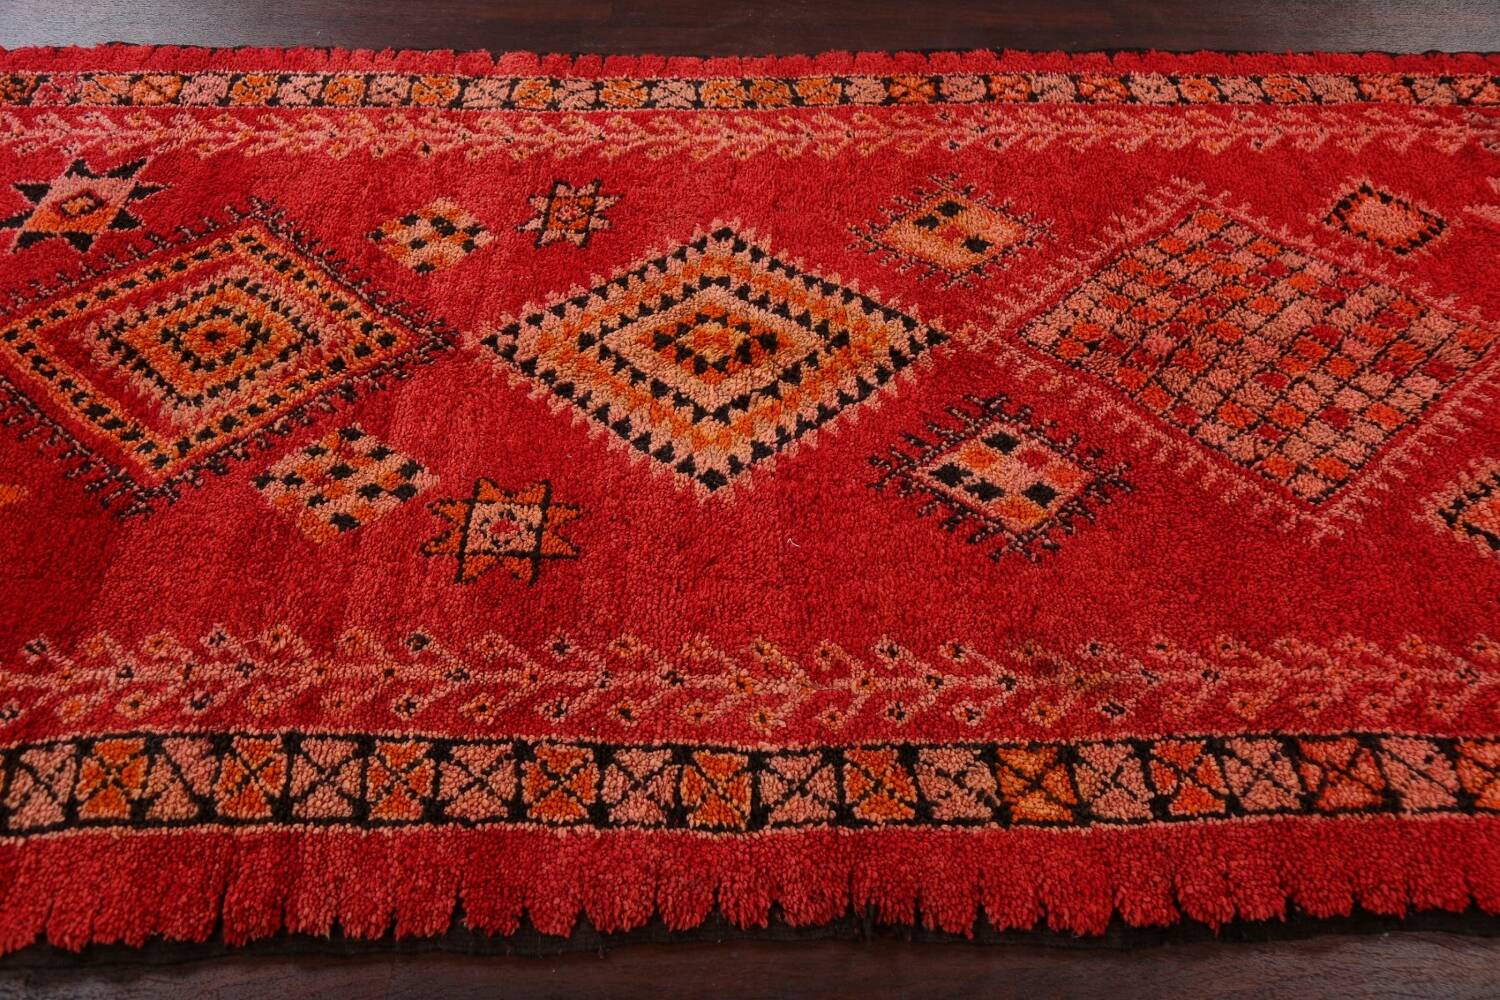 Red Moroccan Berber Area Rug 6x11 image 19